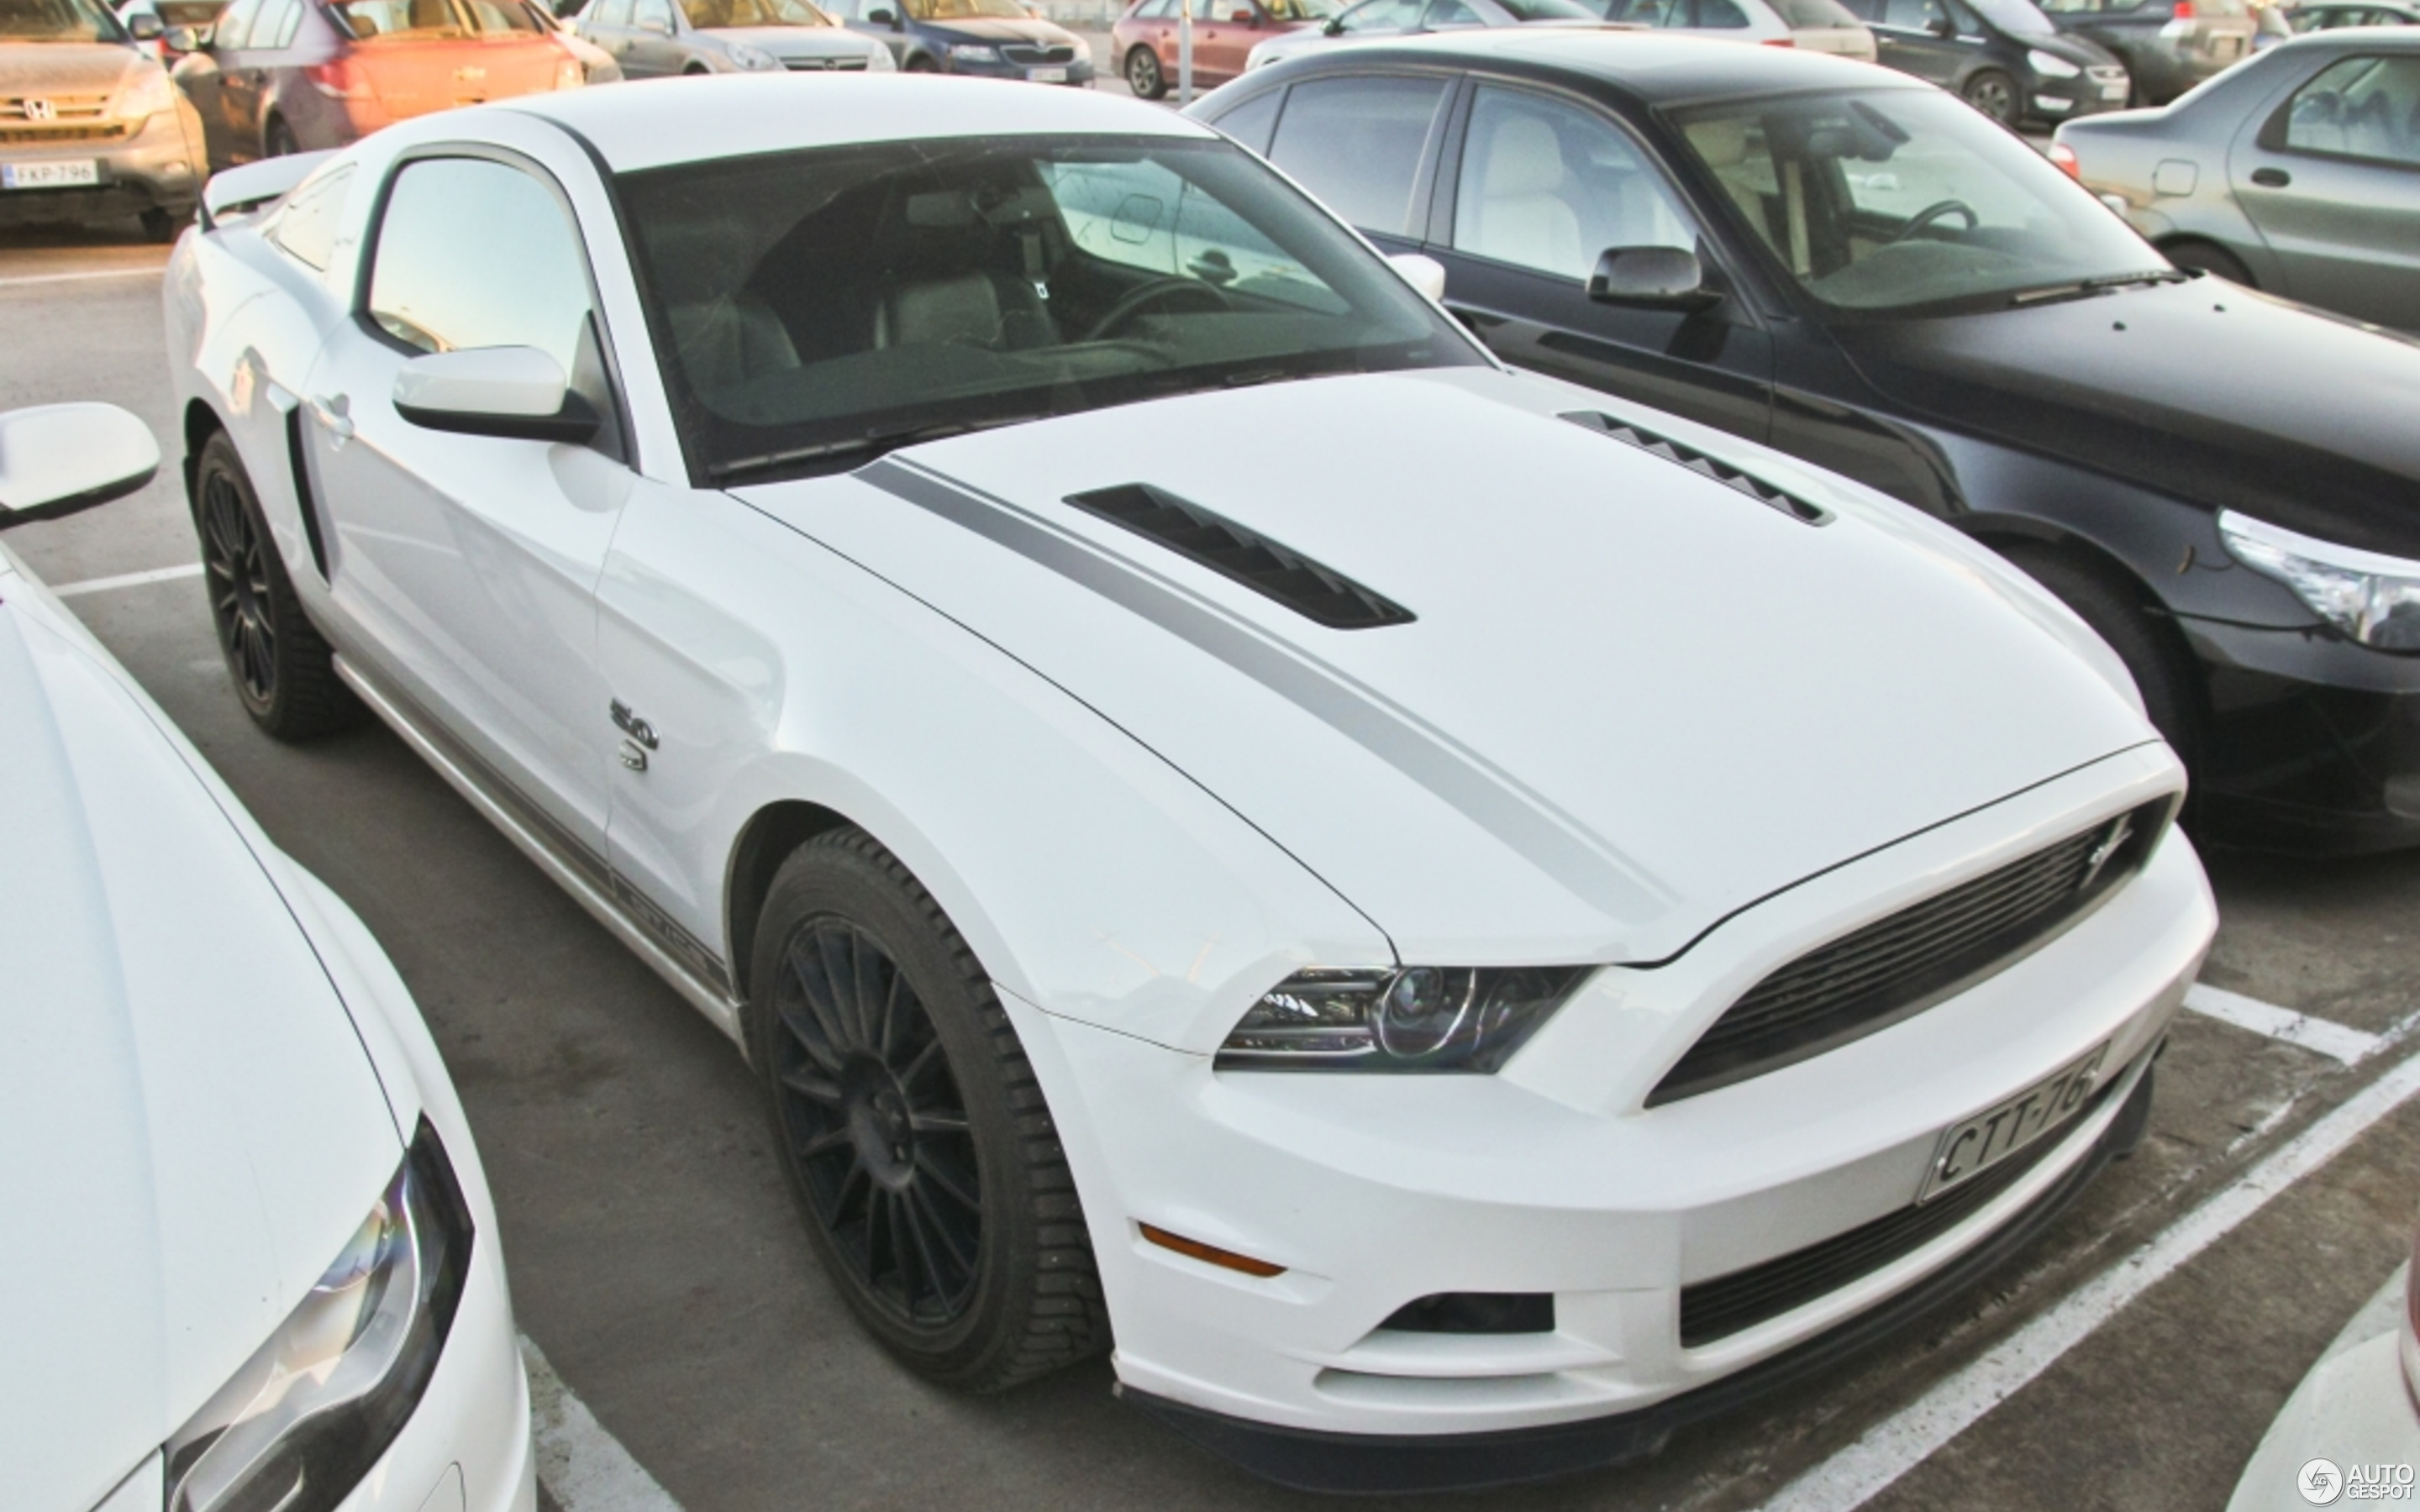 Ford Mustang Gt California Special 2013 20 March 2015 Autogespot